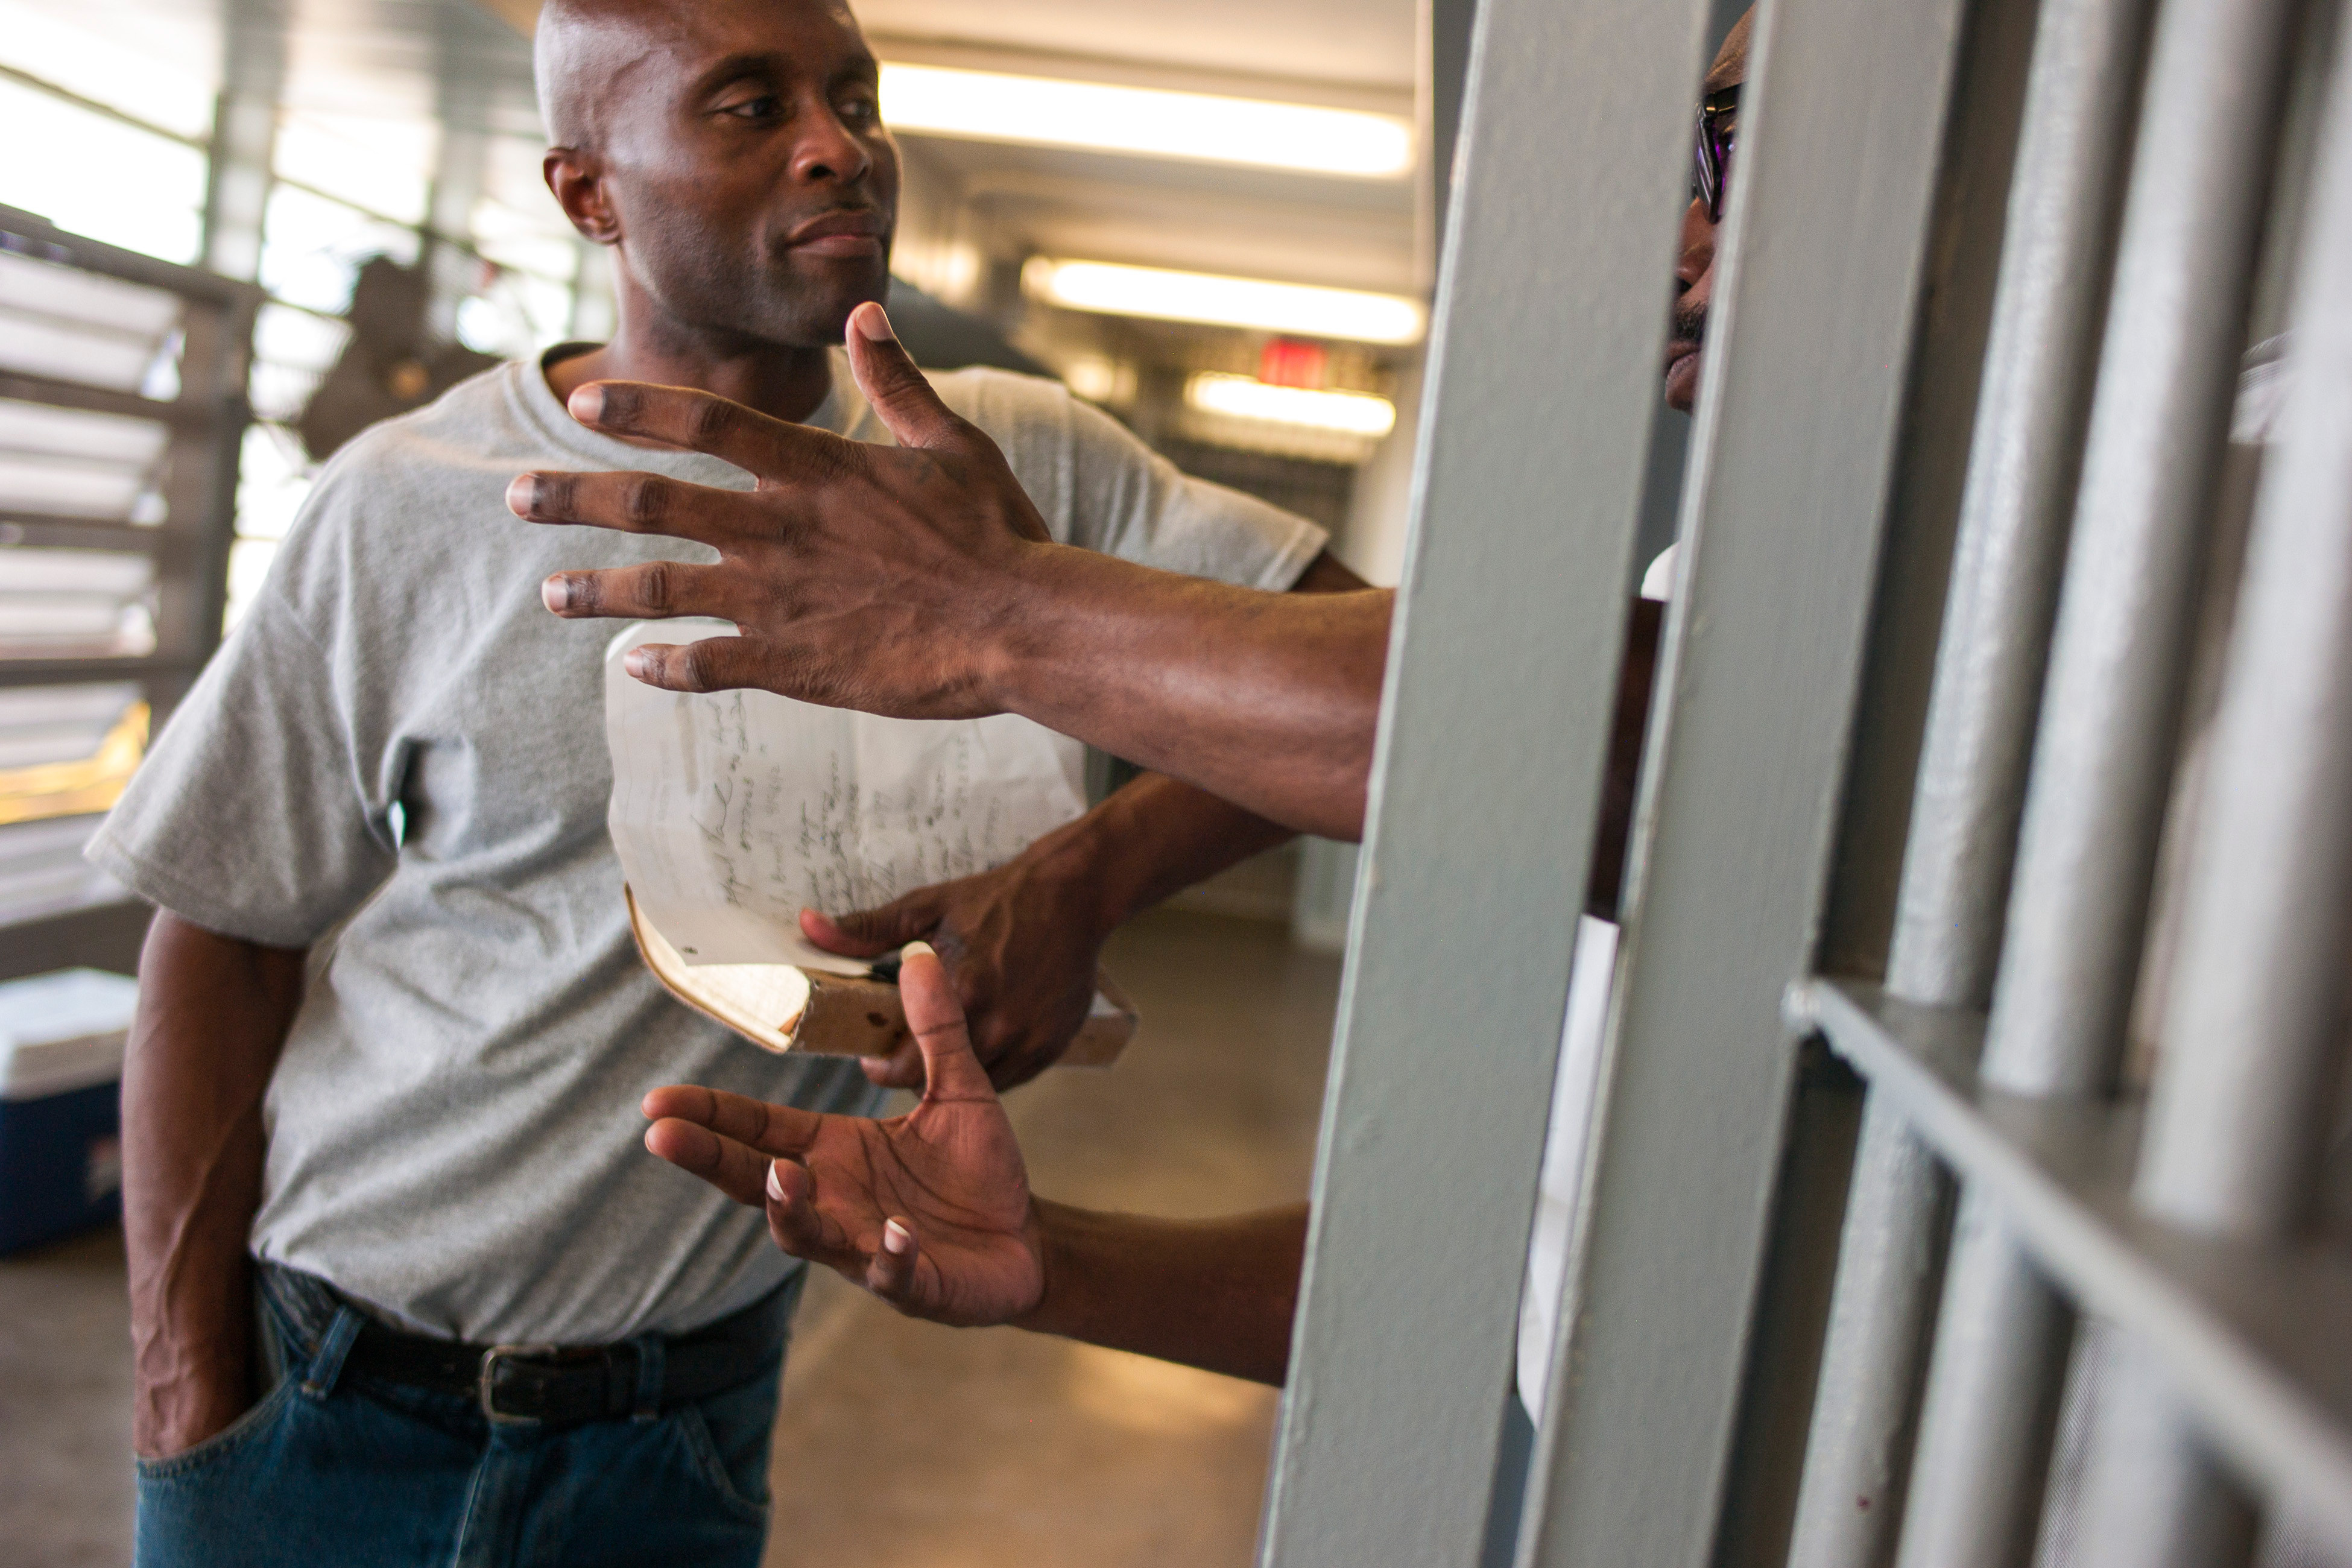 recidivism prison and correctional education Of leaving prison and almost half were re-  reduced recidivism  department of correctional education as a local education agency.